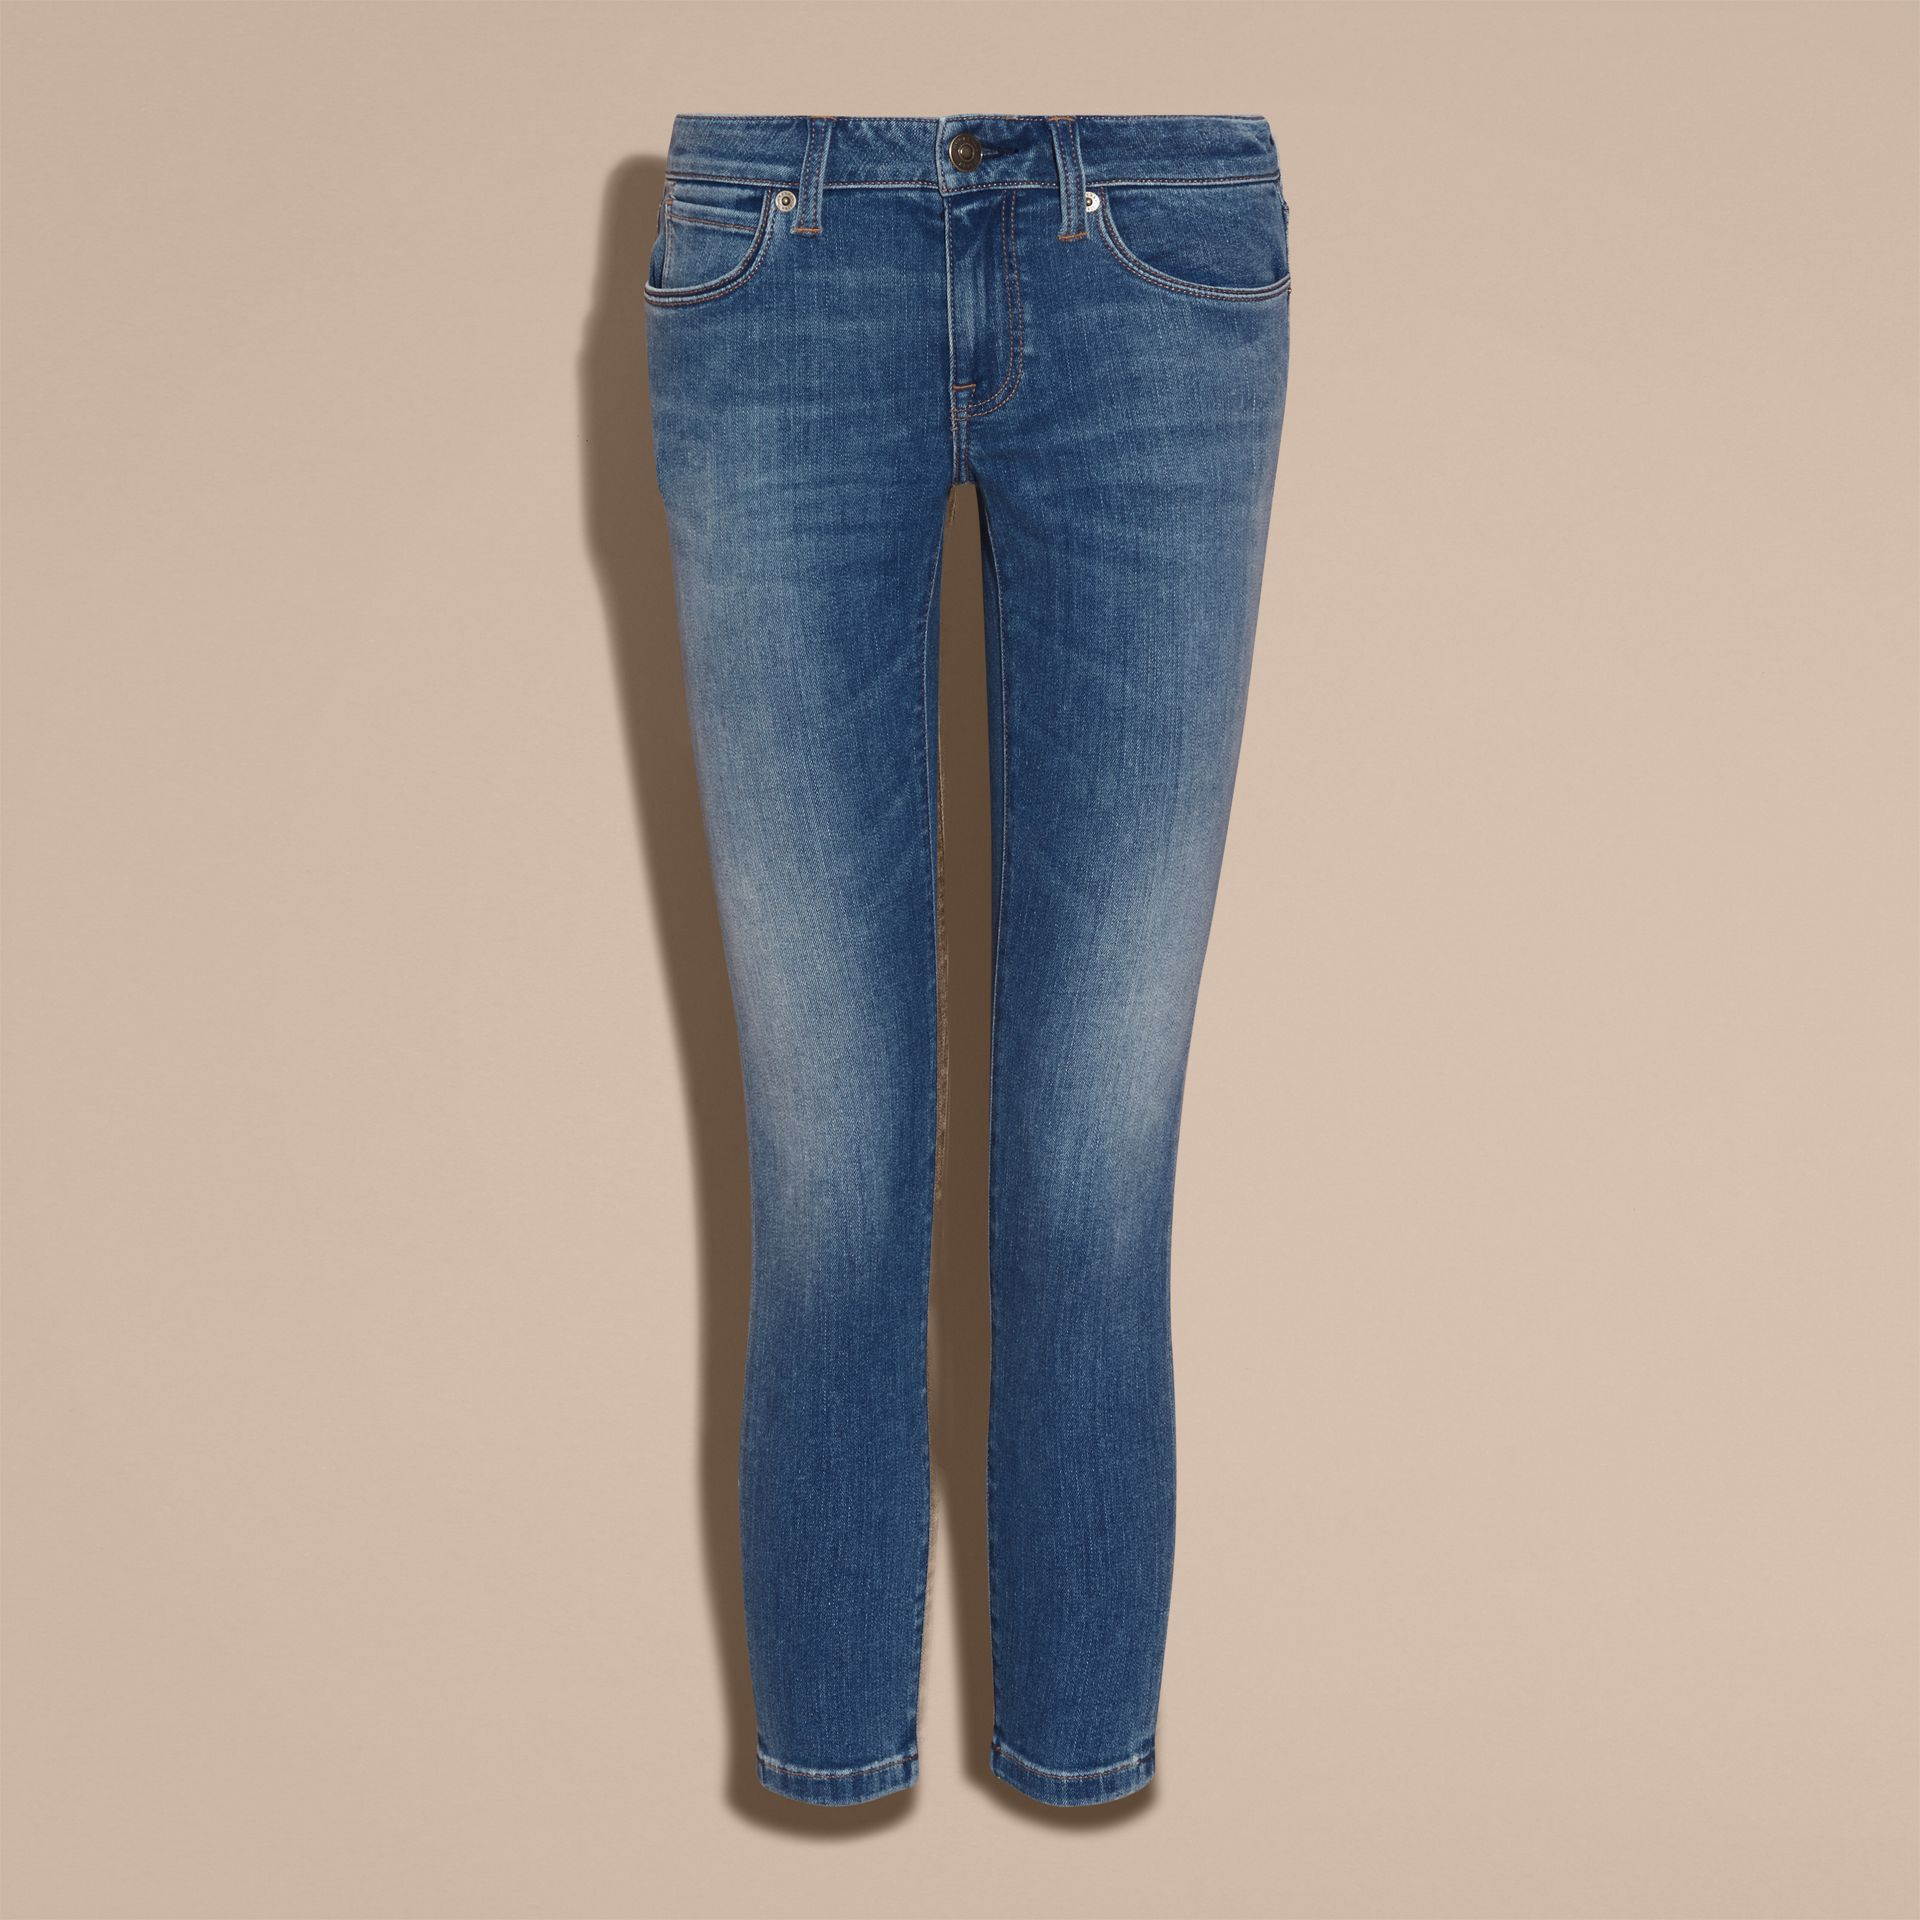 Skinny Fit Low-rise Cropped Jeans in Mid Indigo - Women | Burberry - gallery image 4